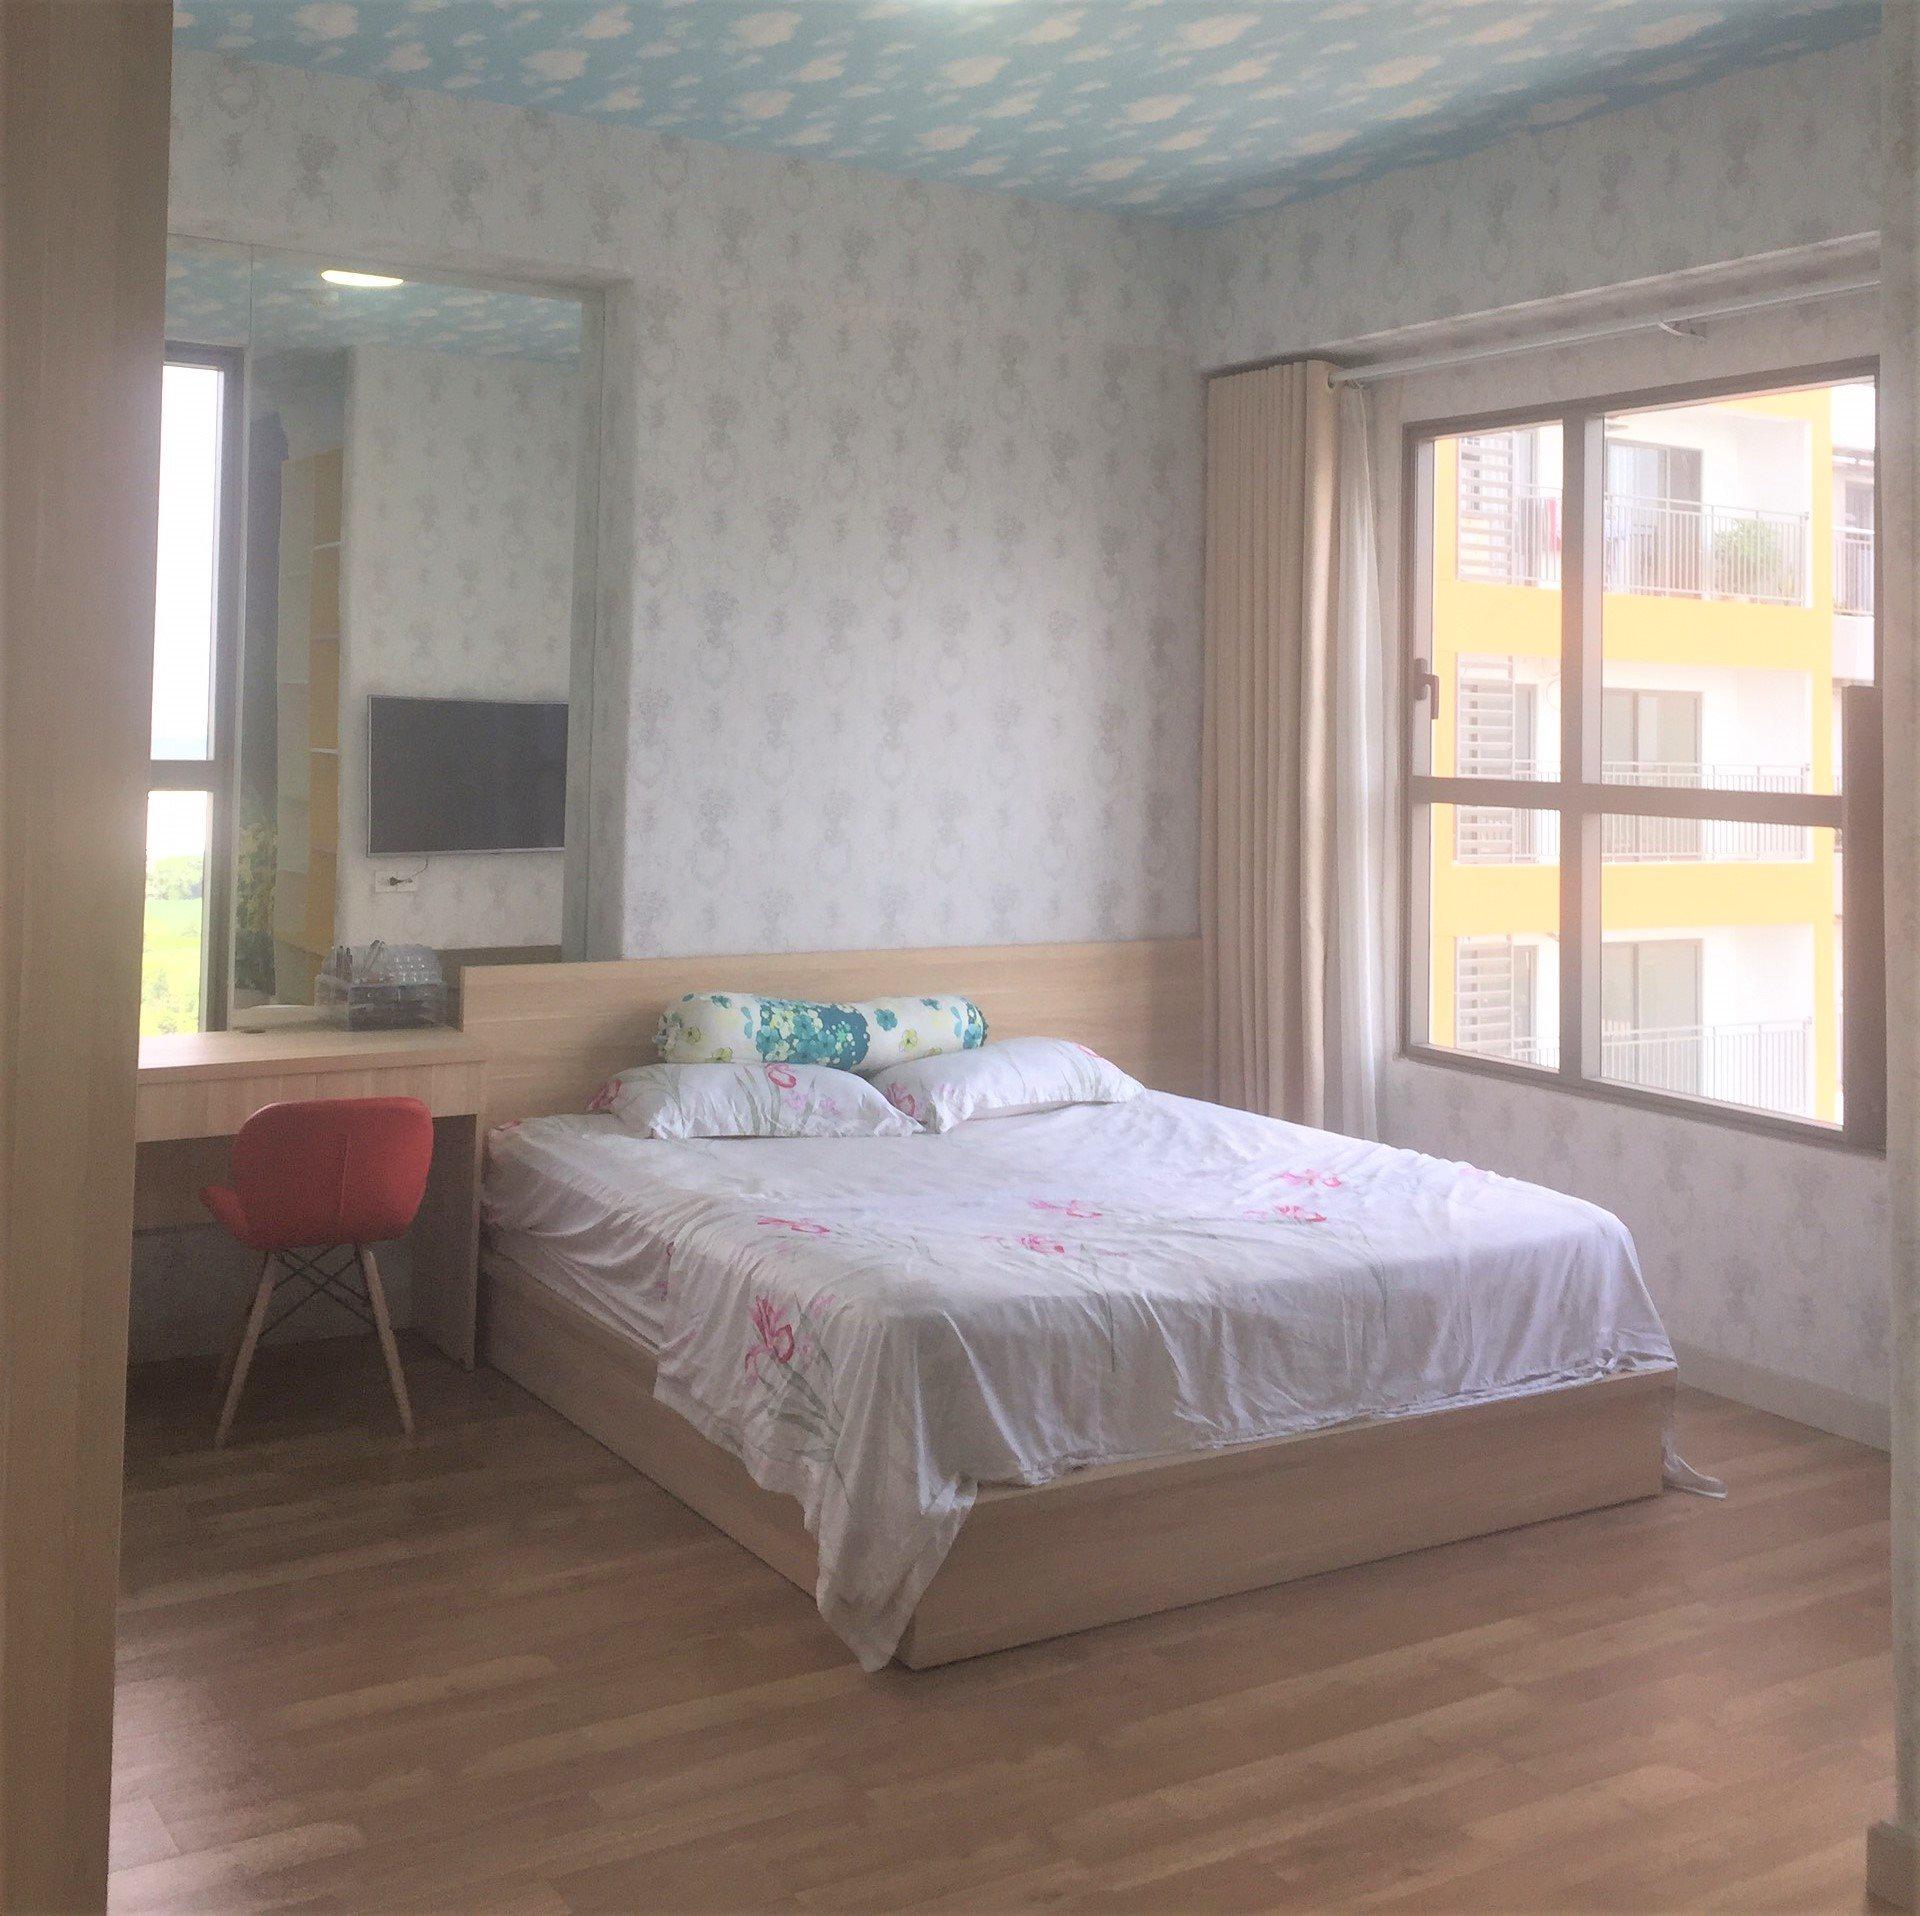 D227092 - APARTMENT FOR RENT - THE SUN AVENUE - 2 Bedrooms